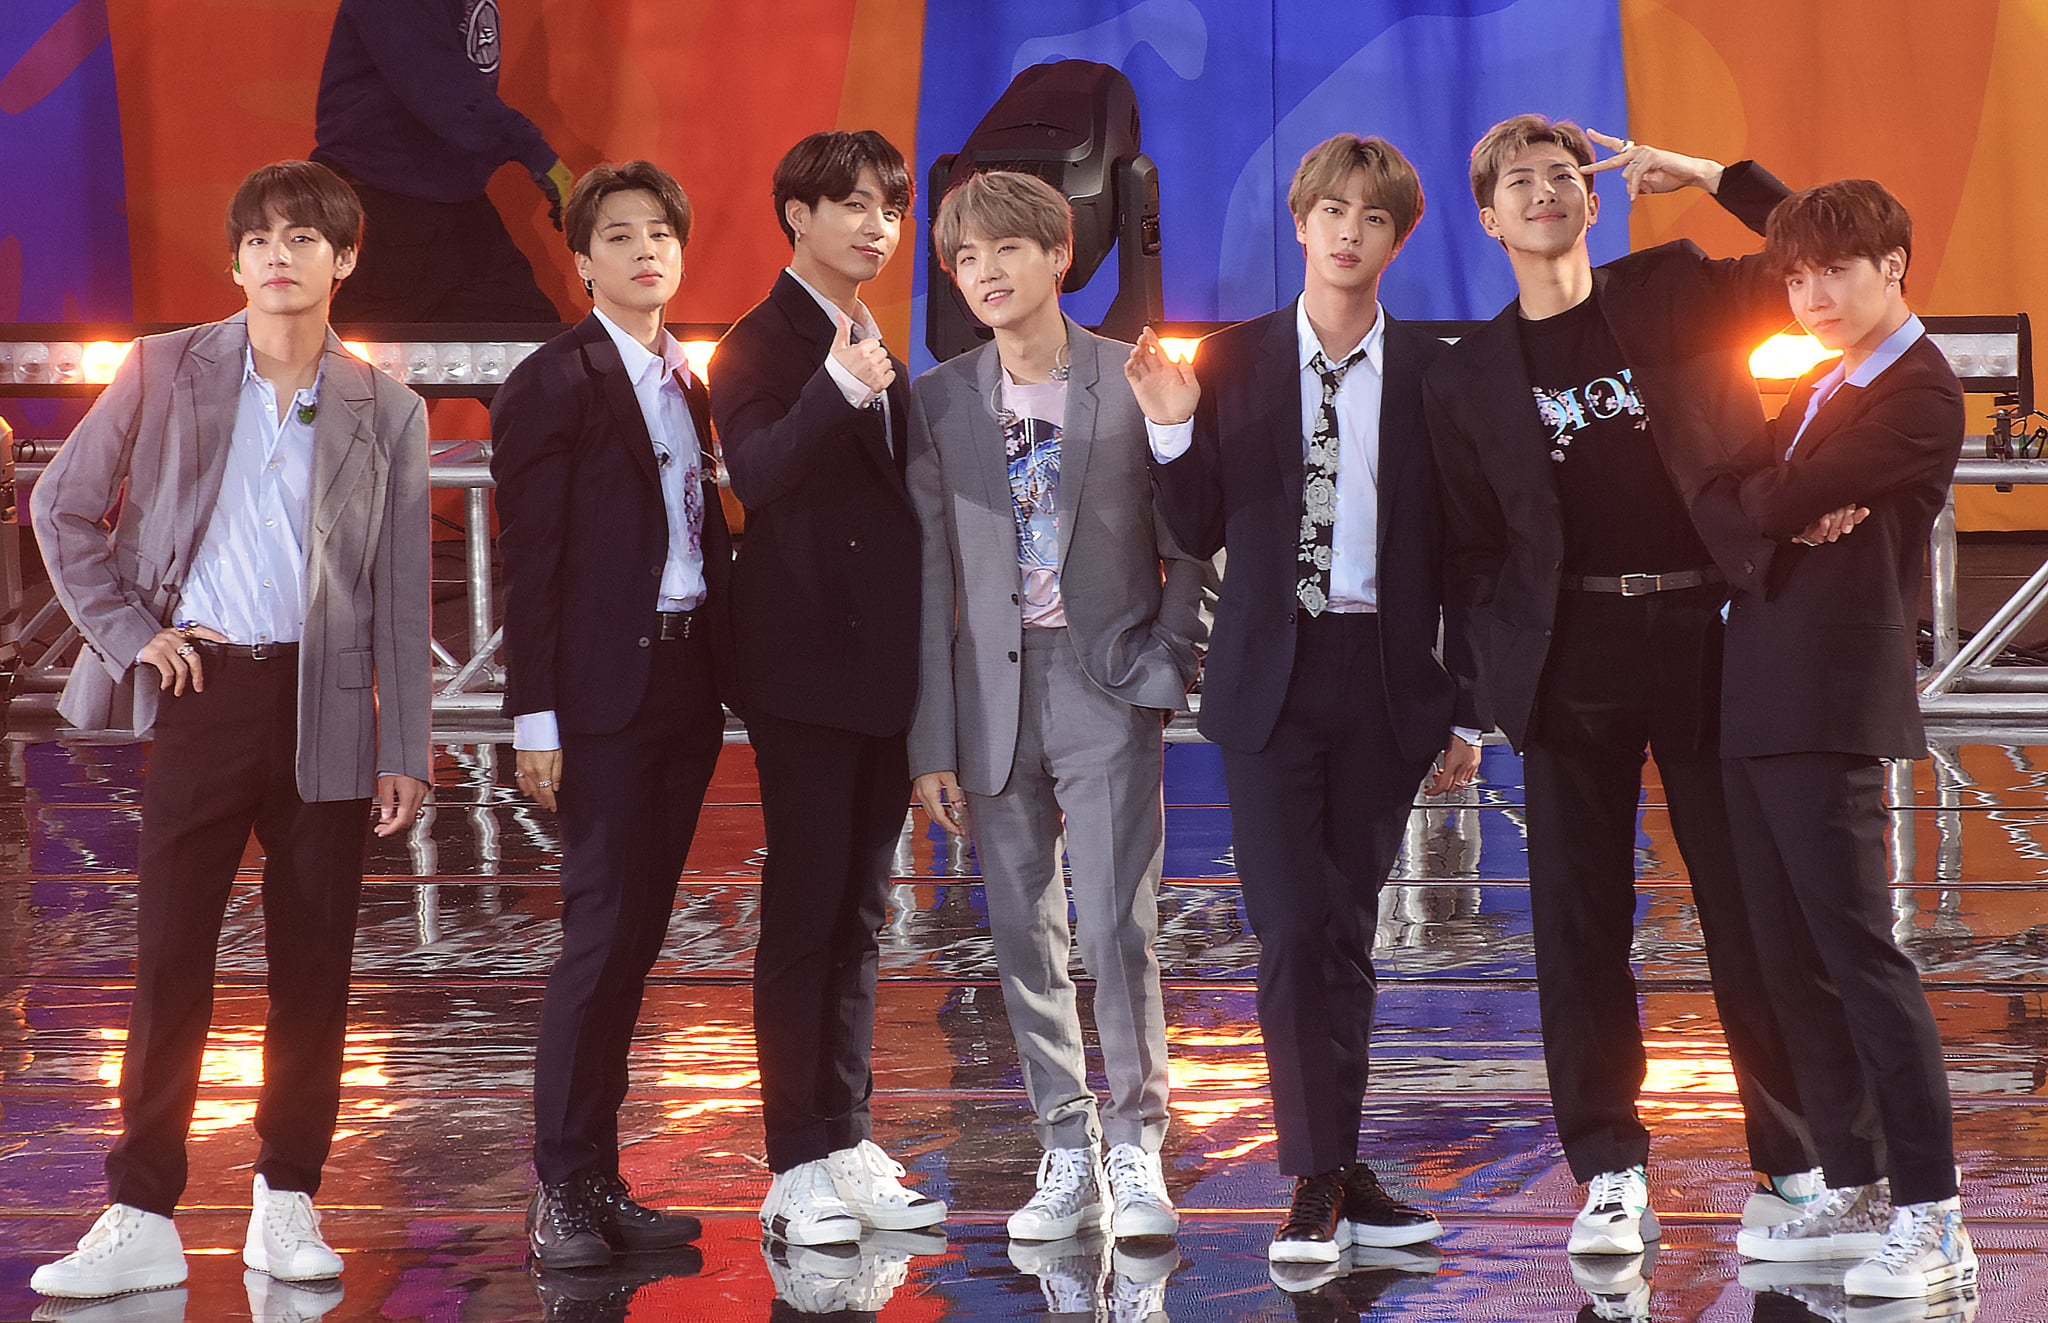 NEW YORK, NY - MAY 15:  Kim Tae-hyung, Park Ji-min, Jungkook Suga, Kim Seok-jin and J-Hope of BTS are seen on May 15, 2019 in New York City.  (Photo by Patricia Schlein/Star Max/GC Images)